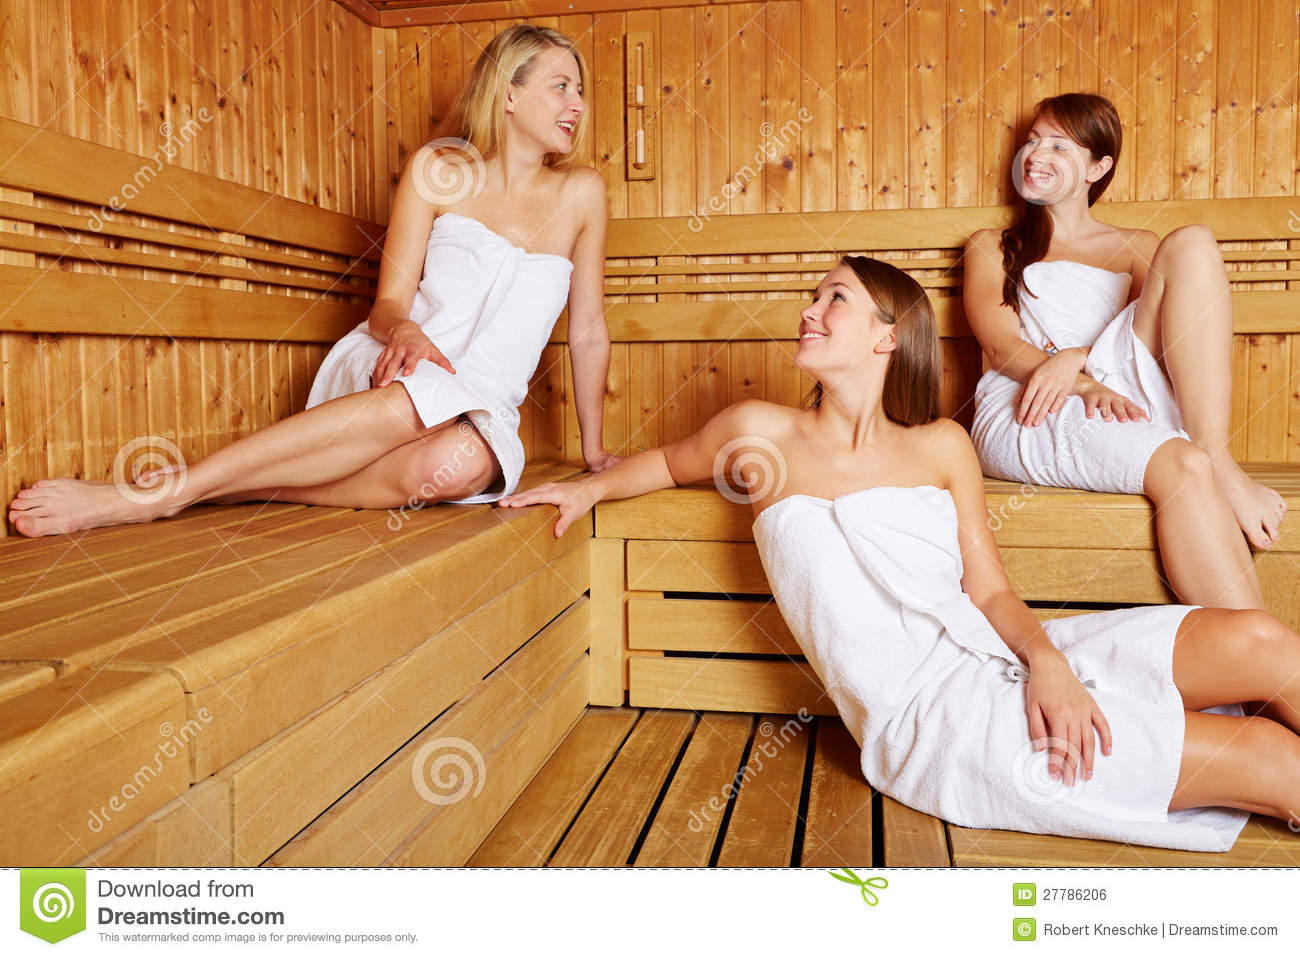 frauen in der entspannenden und sprechenden sauna stockfoto bild von sauna erholung 27786206. Black Bedroom Furniture Sets. Home Design Ideas